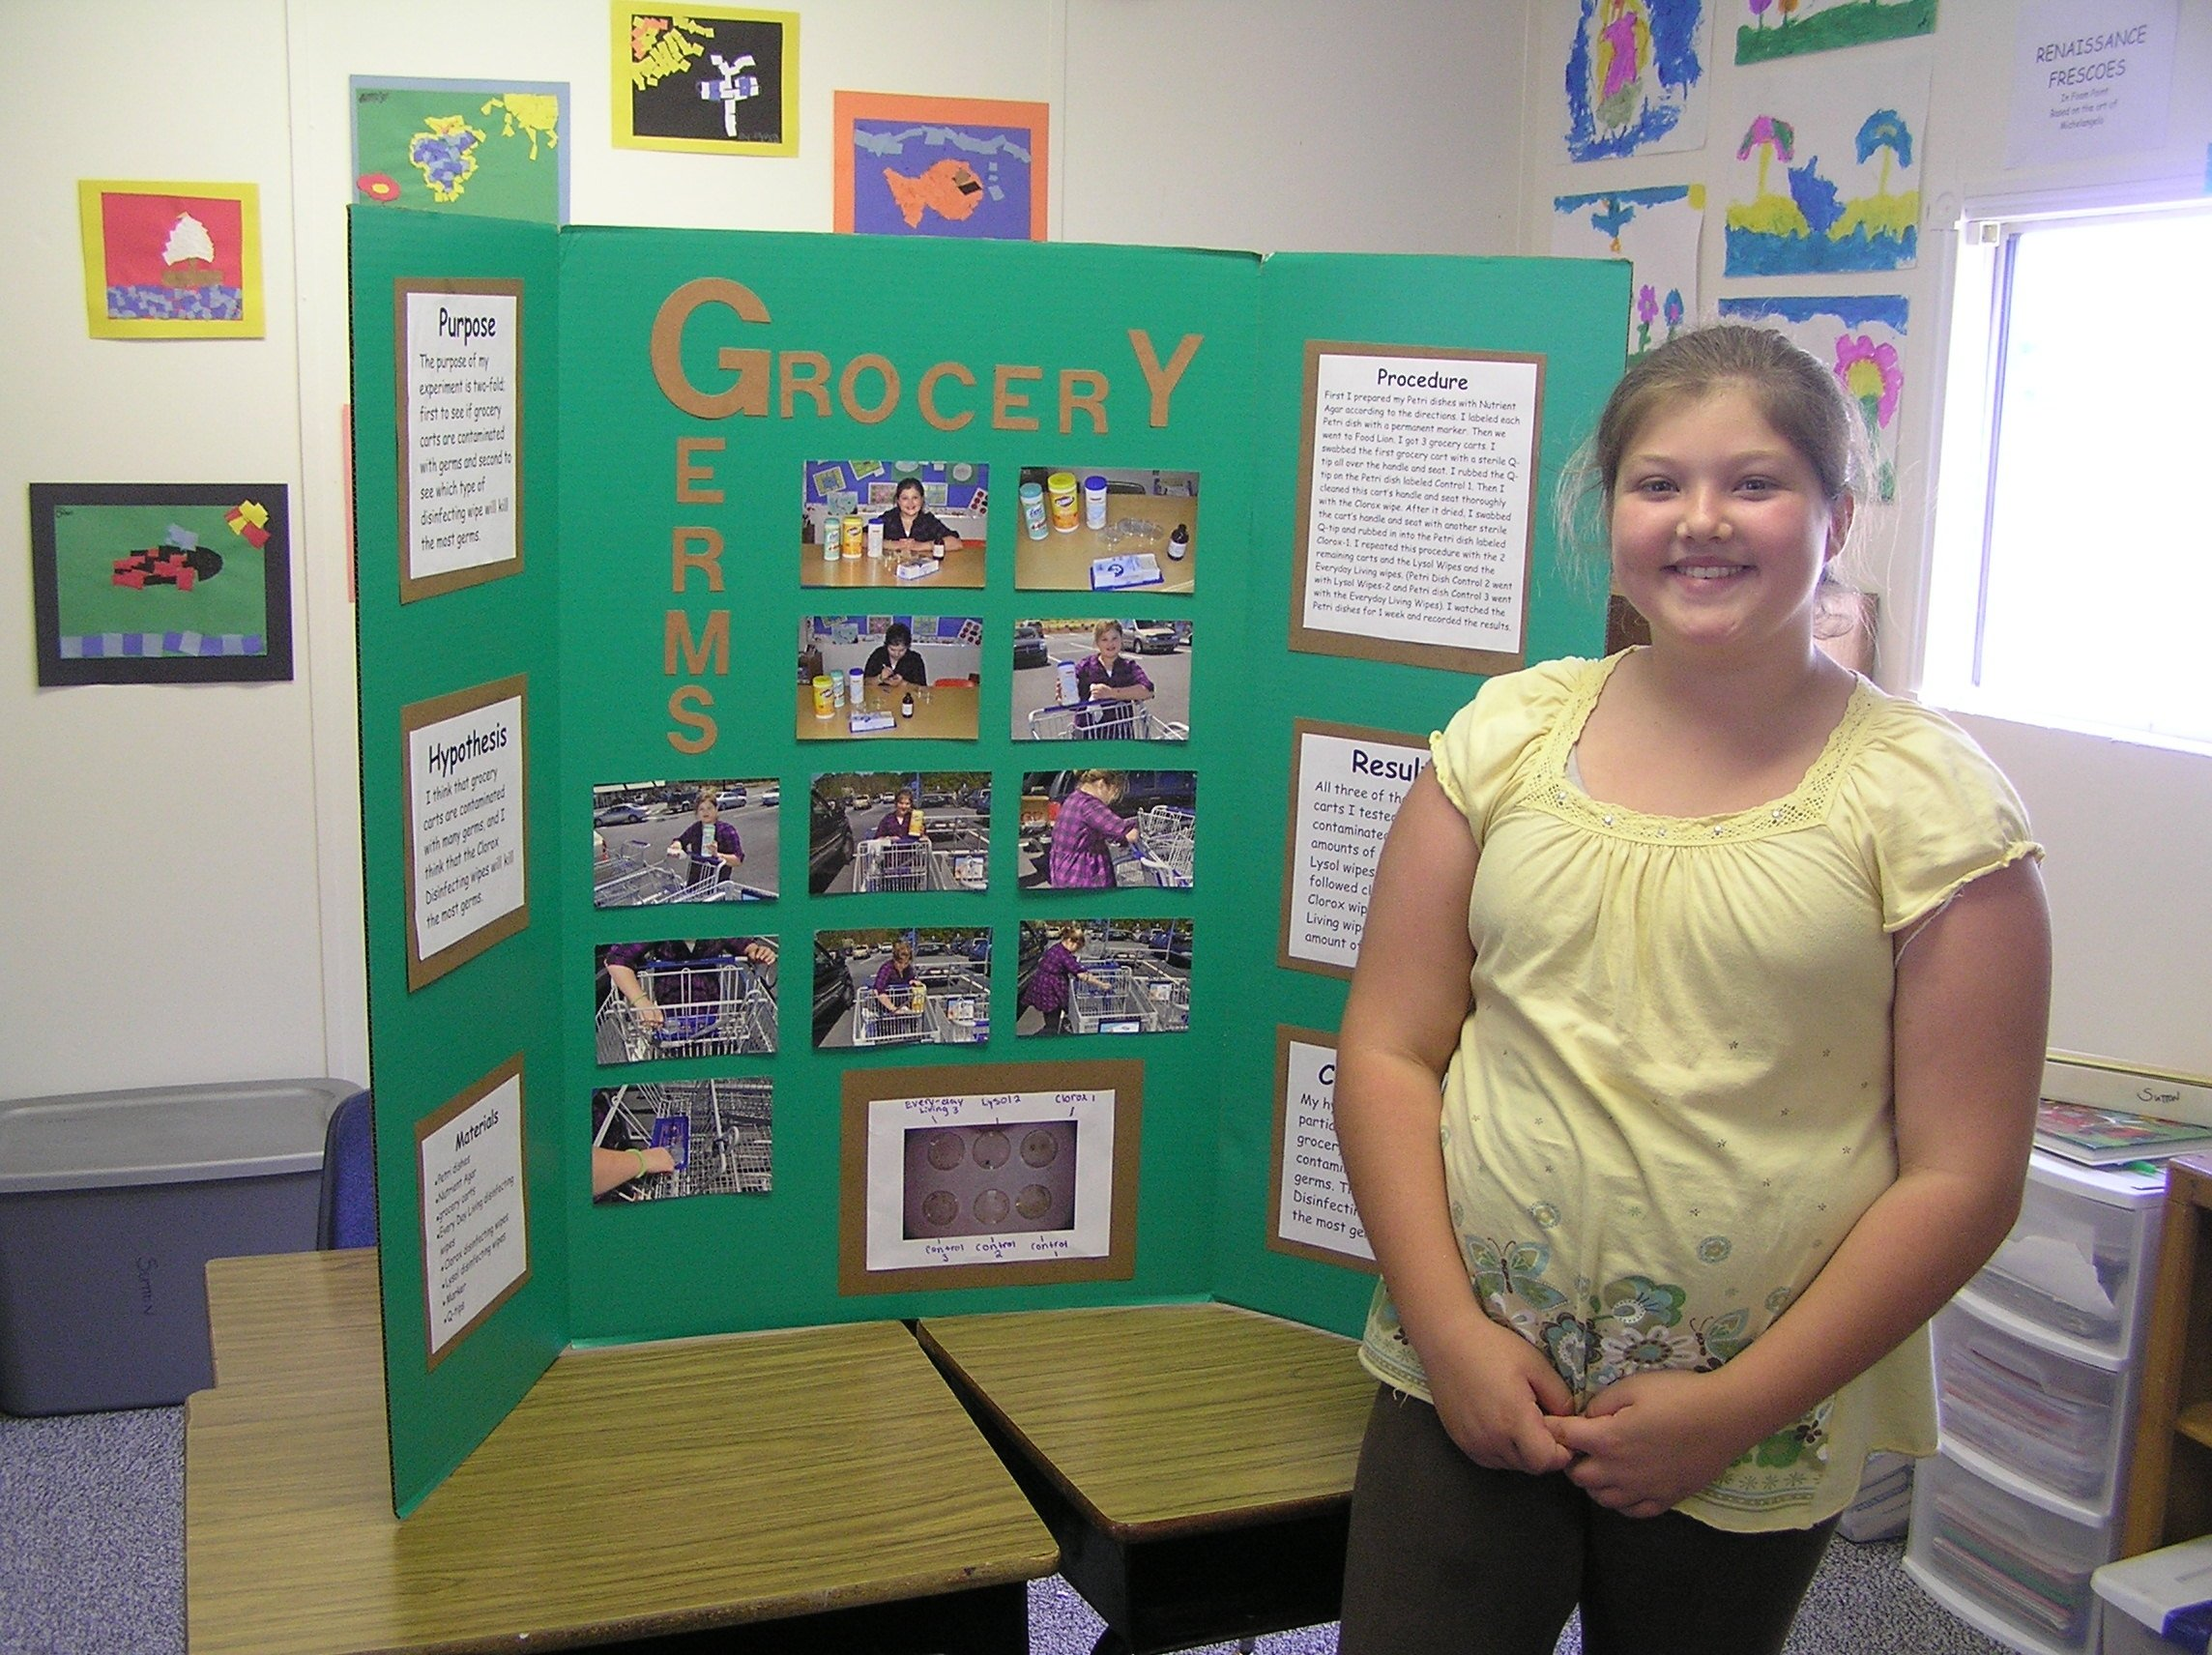 10 Elegant Science Fair Ideas For 5Th Graders grocery germs whats on that cart handle science fair 13